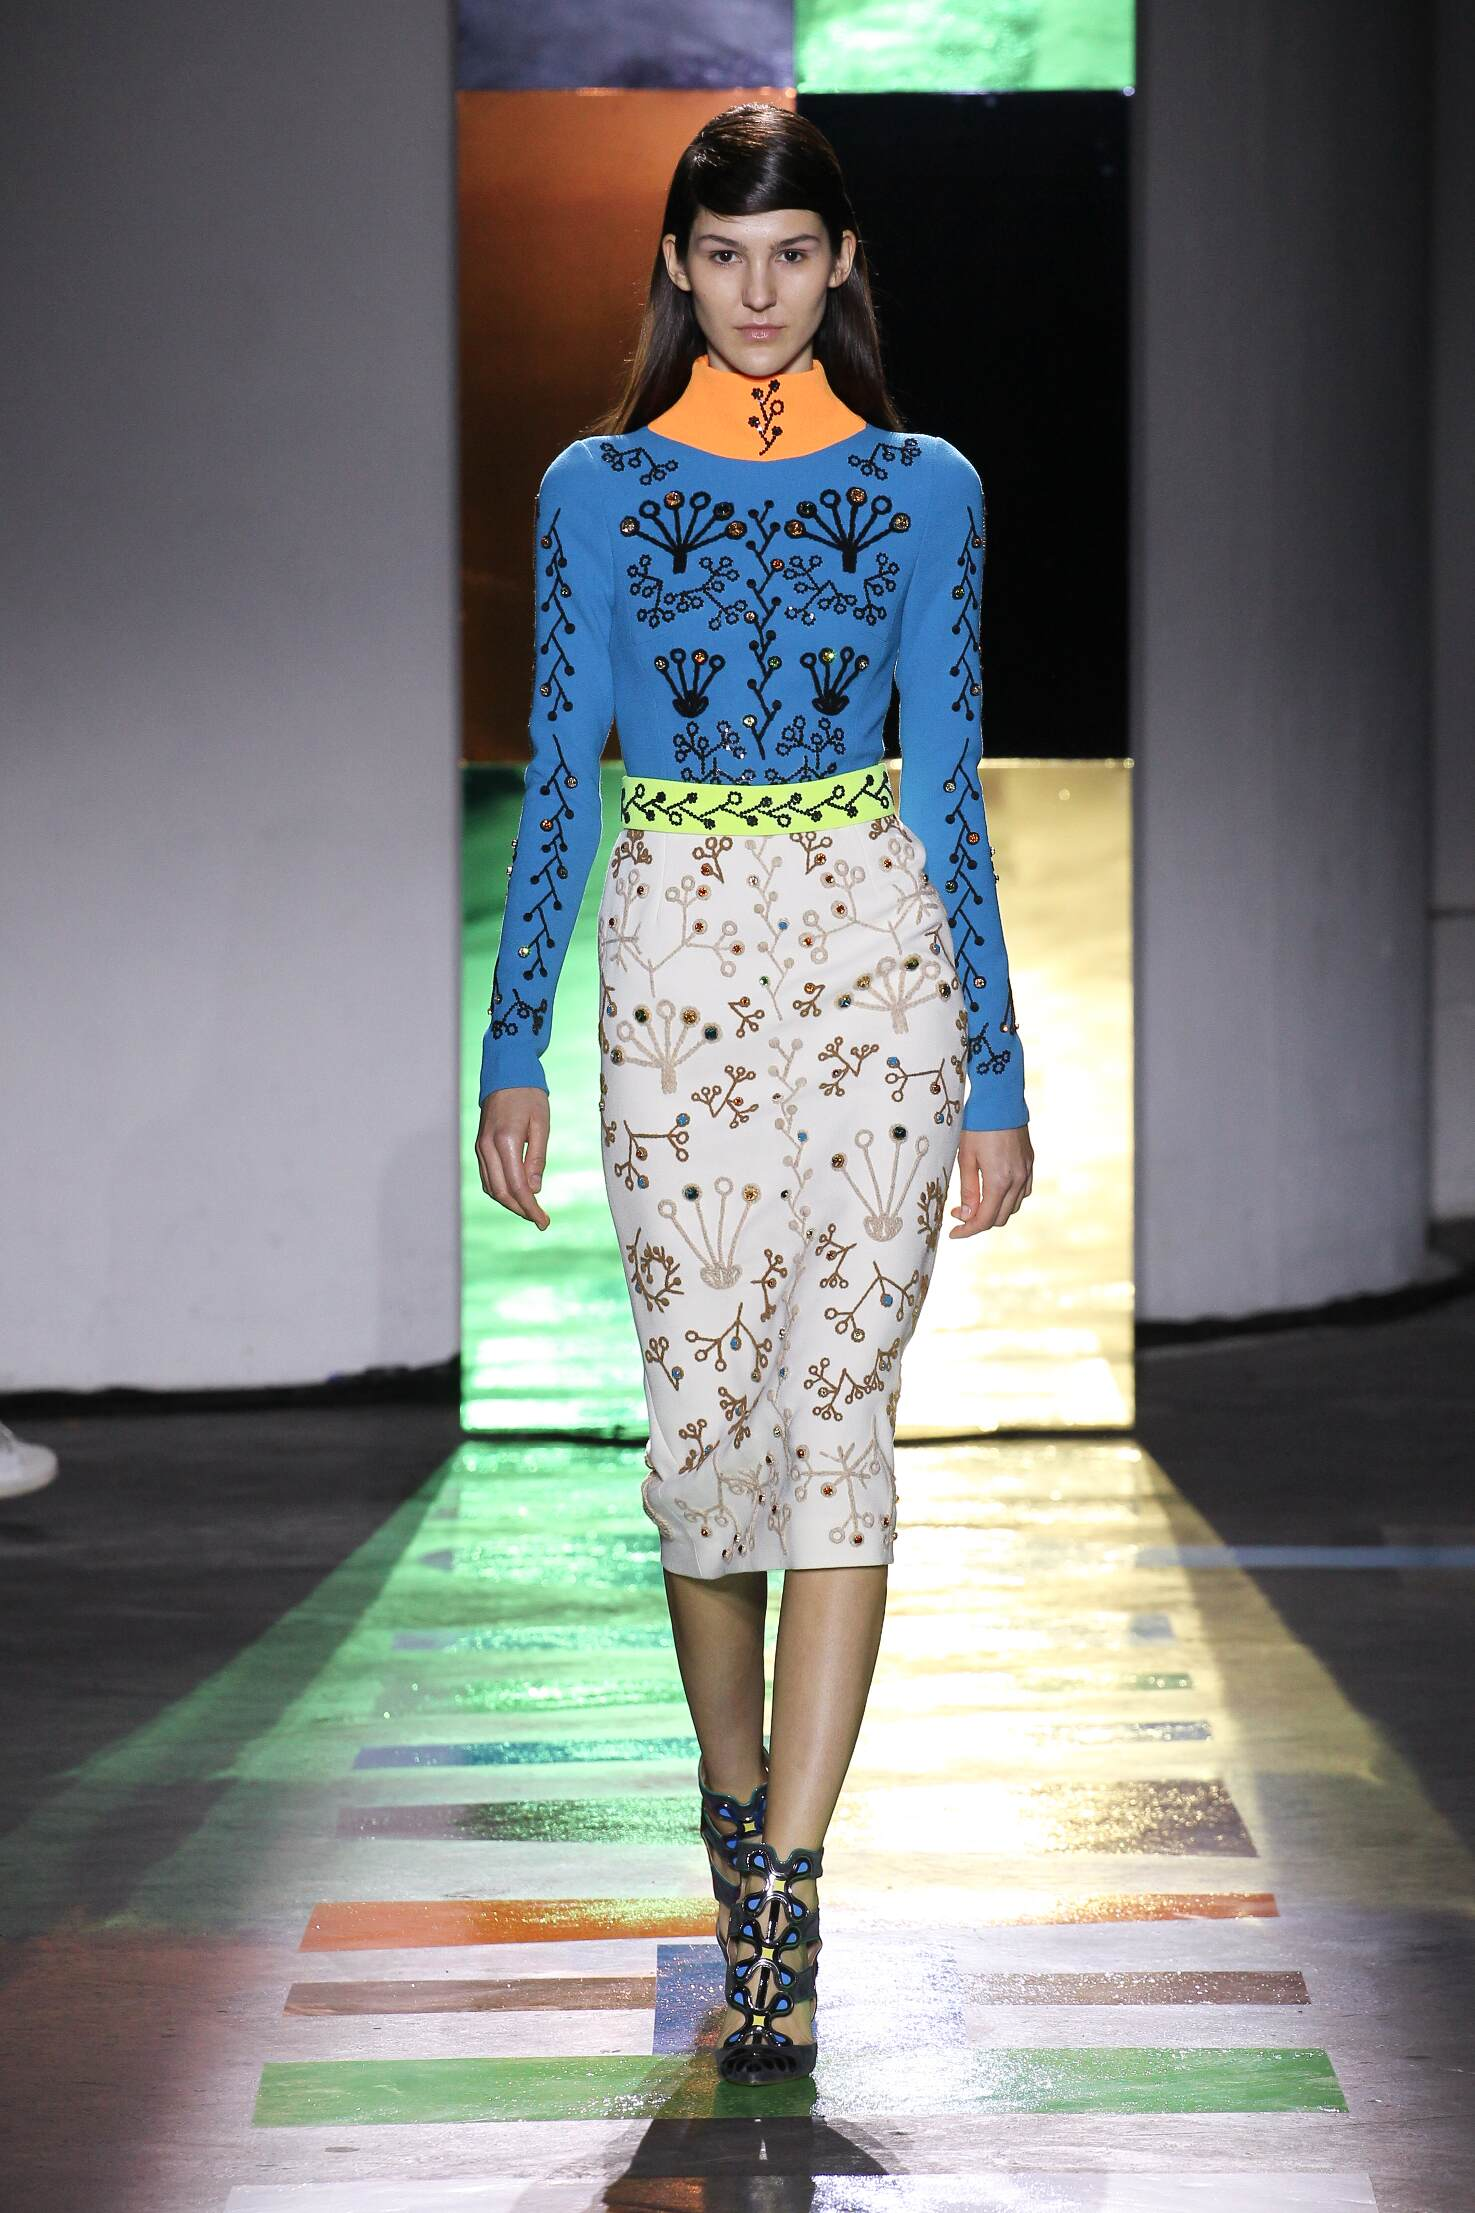 Peter Pilotto Collection Woman London Fashion Week